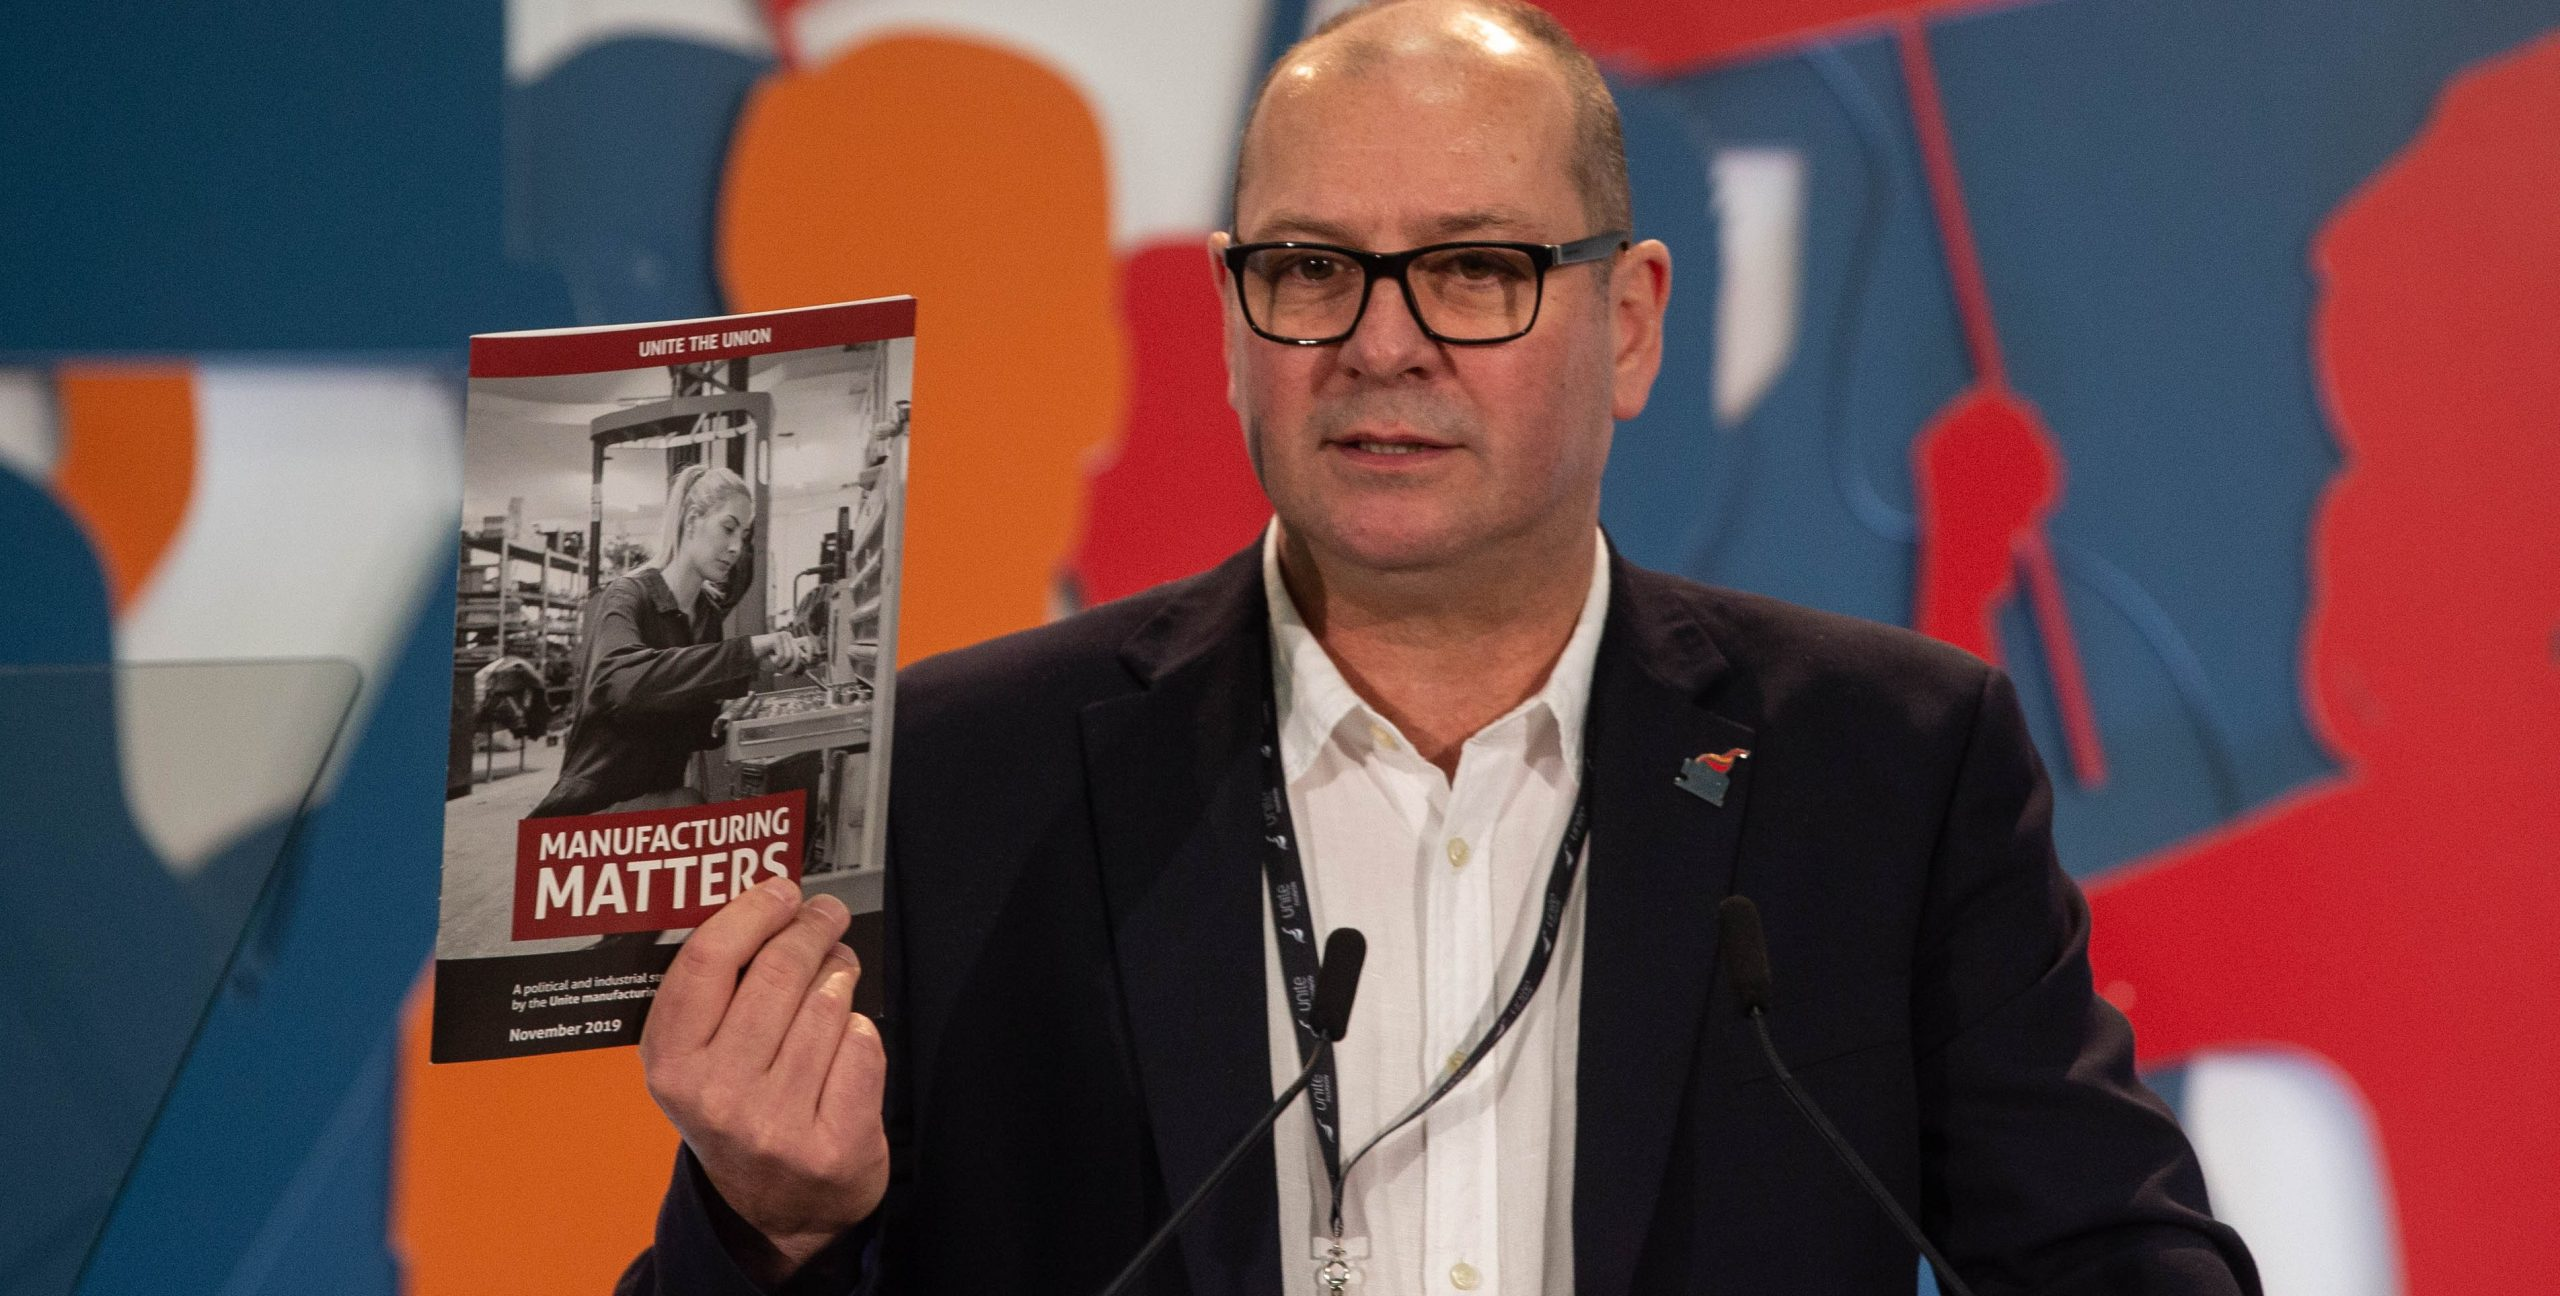 Steve Turner launches manufacturing matters